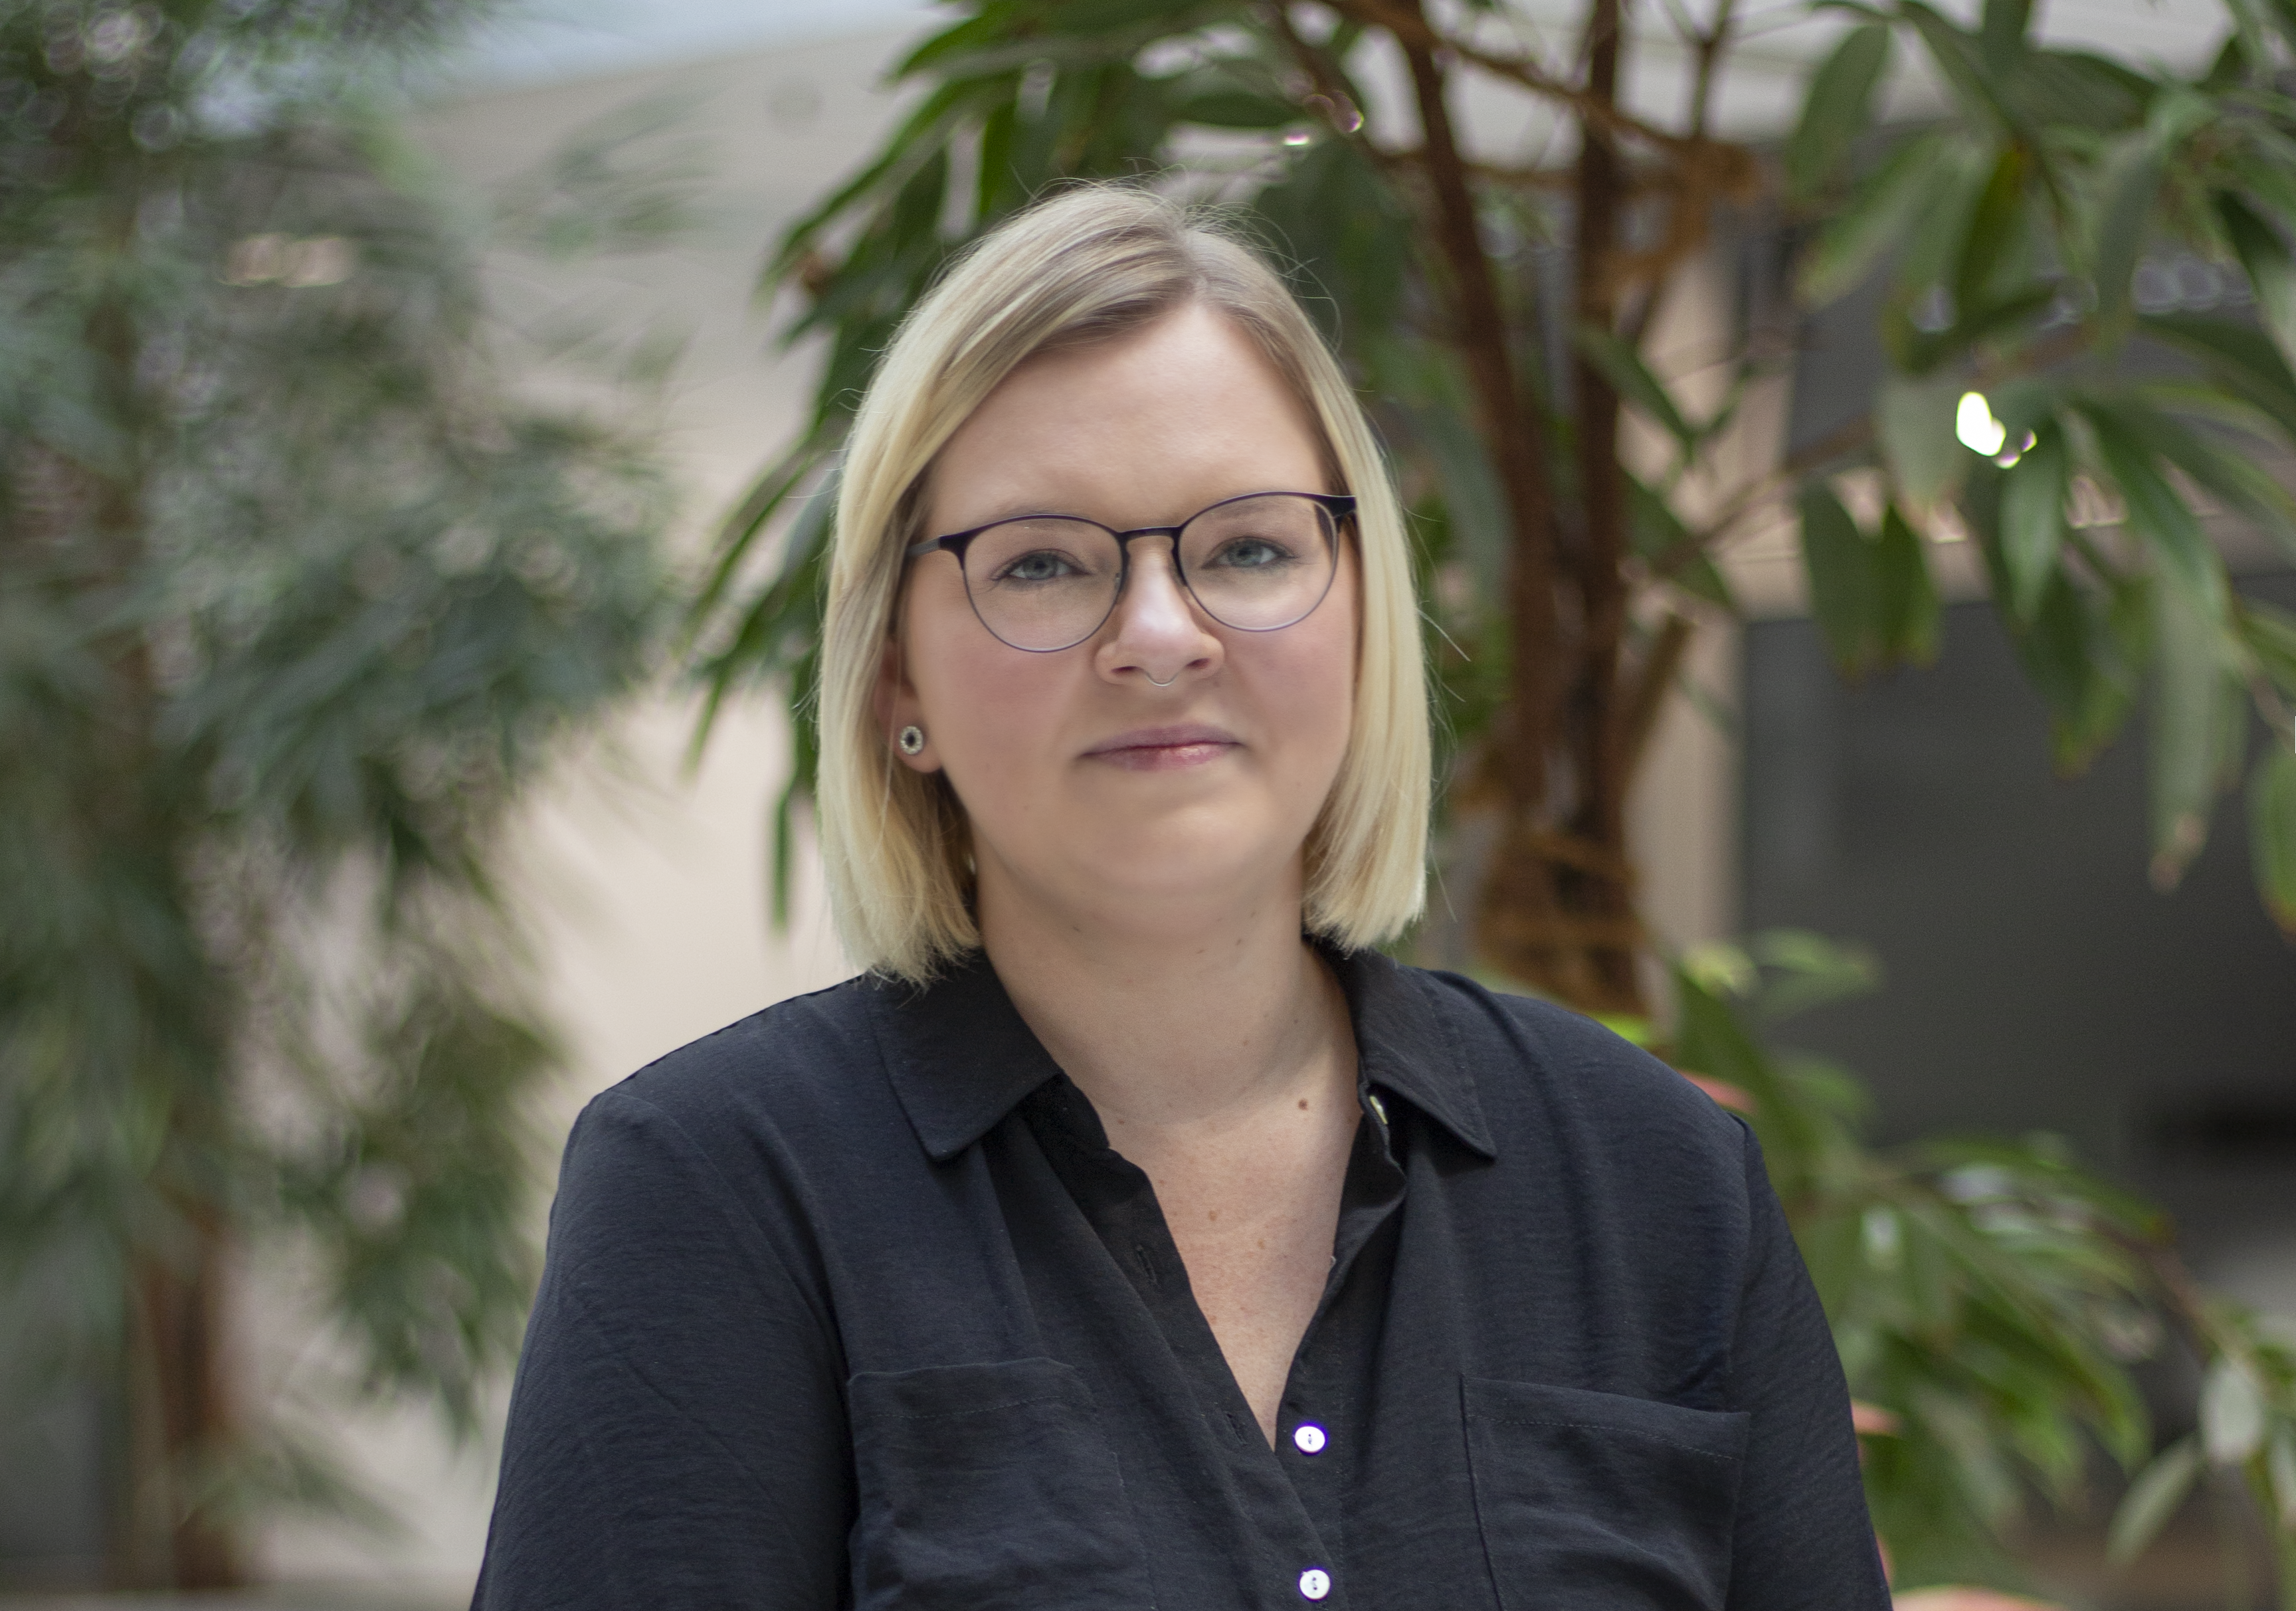 Meet Stefanie, Service Delivery Manager in Germany